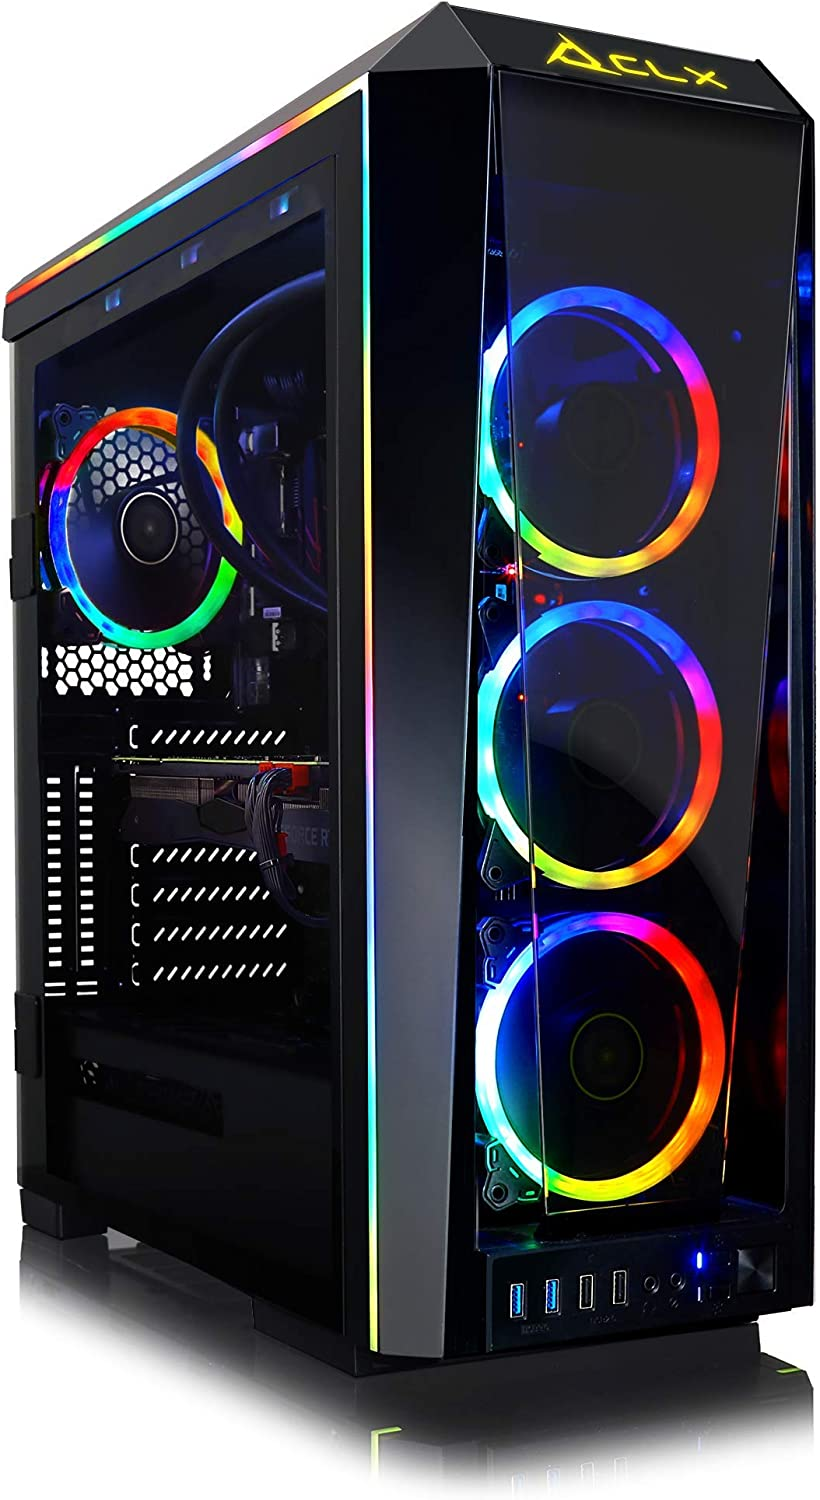 CLX Set - Extreme Gaming PC, Liquid-Cooled Intel Core i9 9900K 3.6GHz (Max Turbo 5.0GHz) 8-Core, Z390 ATX, 16GB DDR4 3200MHz, GeForce RTX 2080 Ti 11GB, 960GB SSD + 3TB HDD, WiFi, Black/RGB